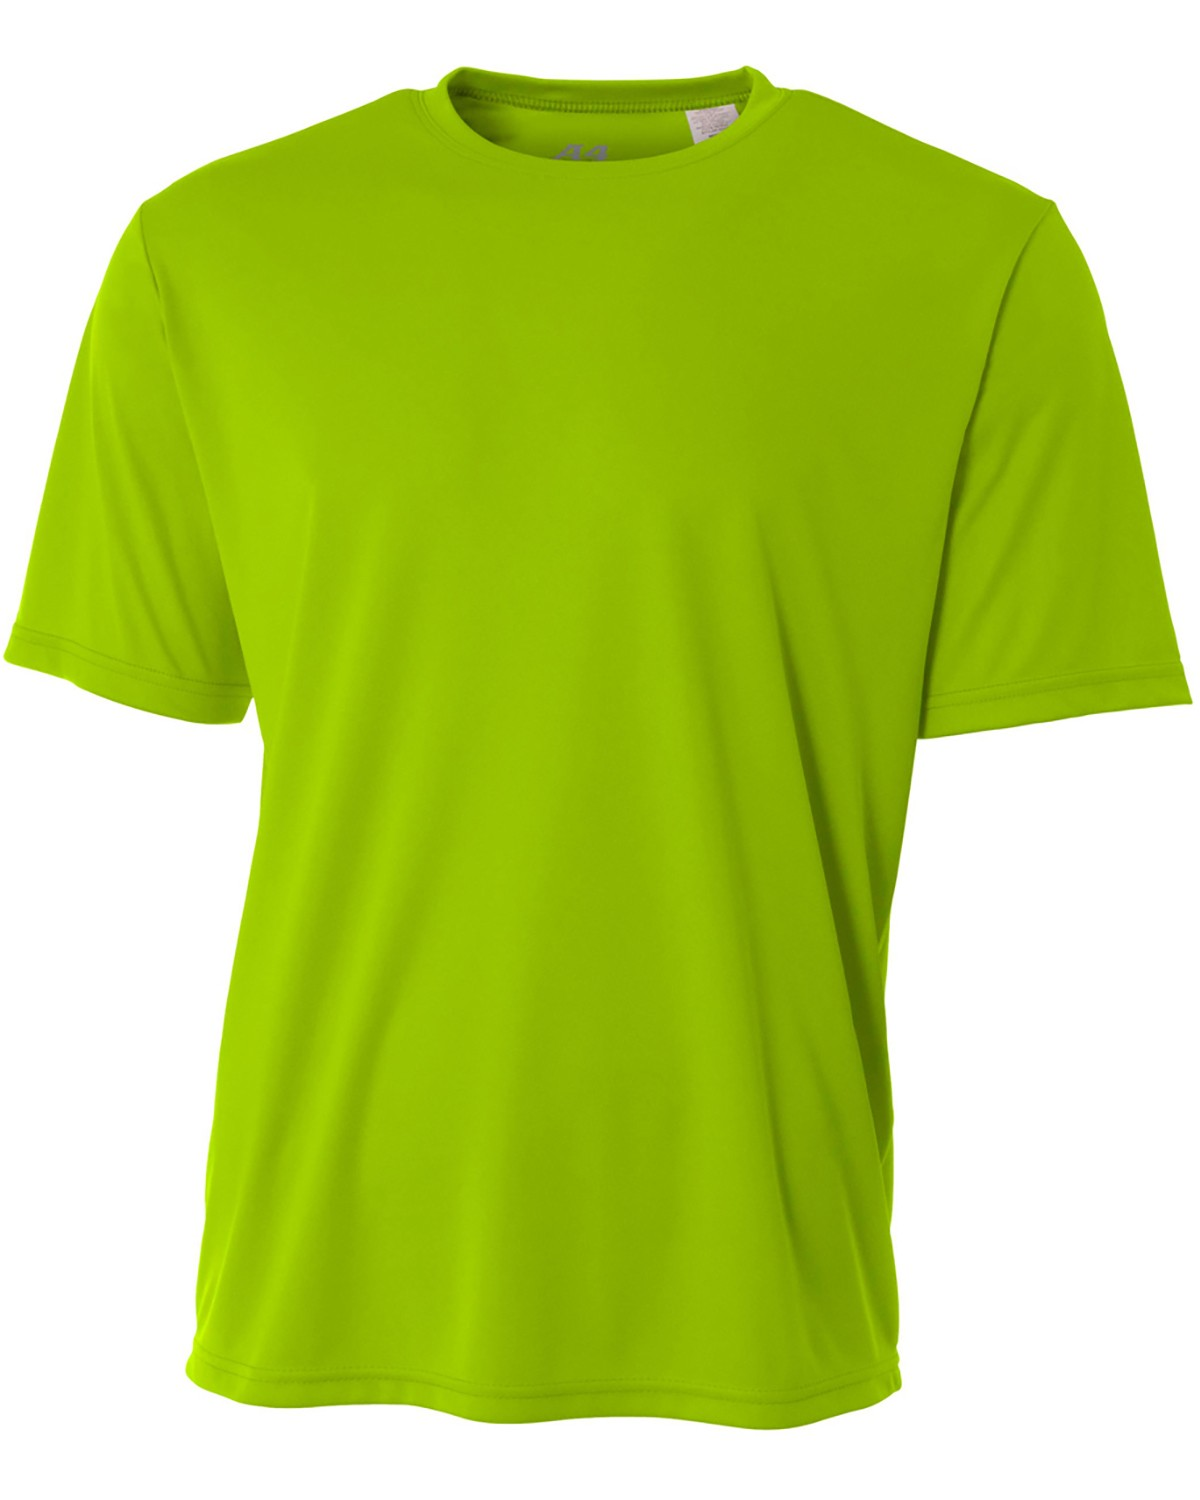 NB3142 A4 LIME